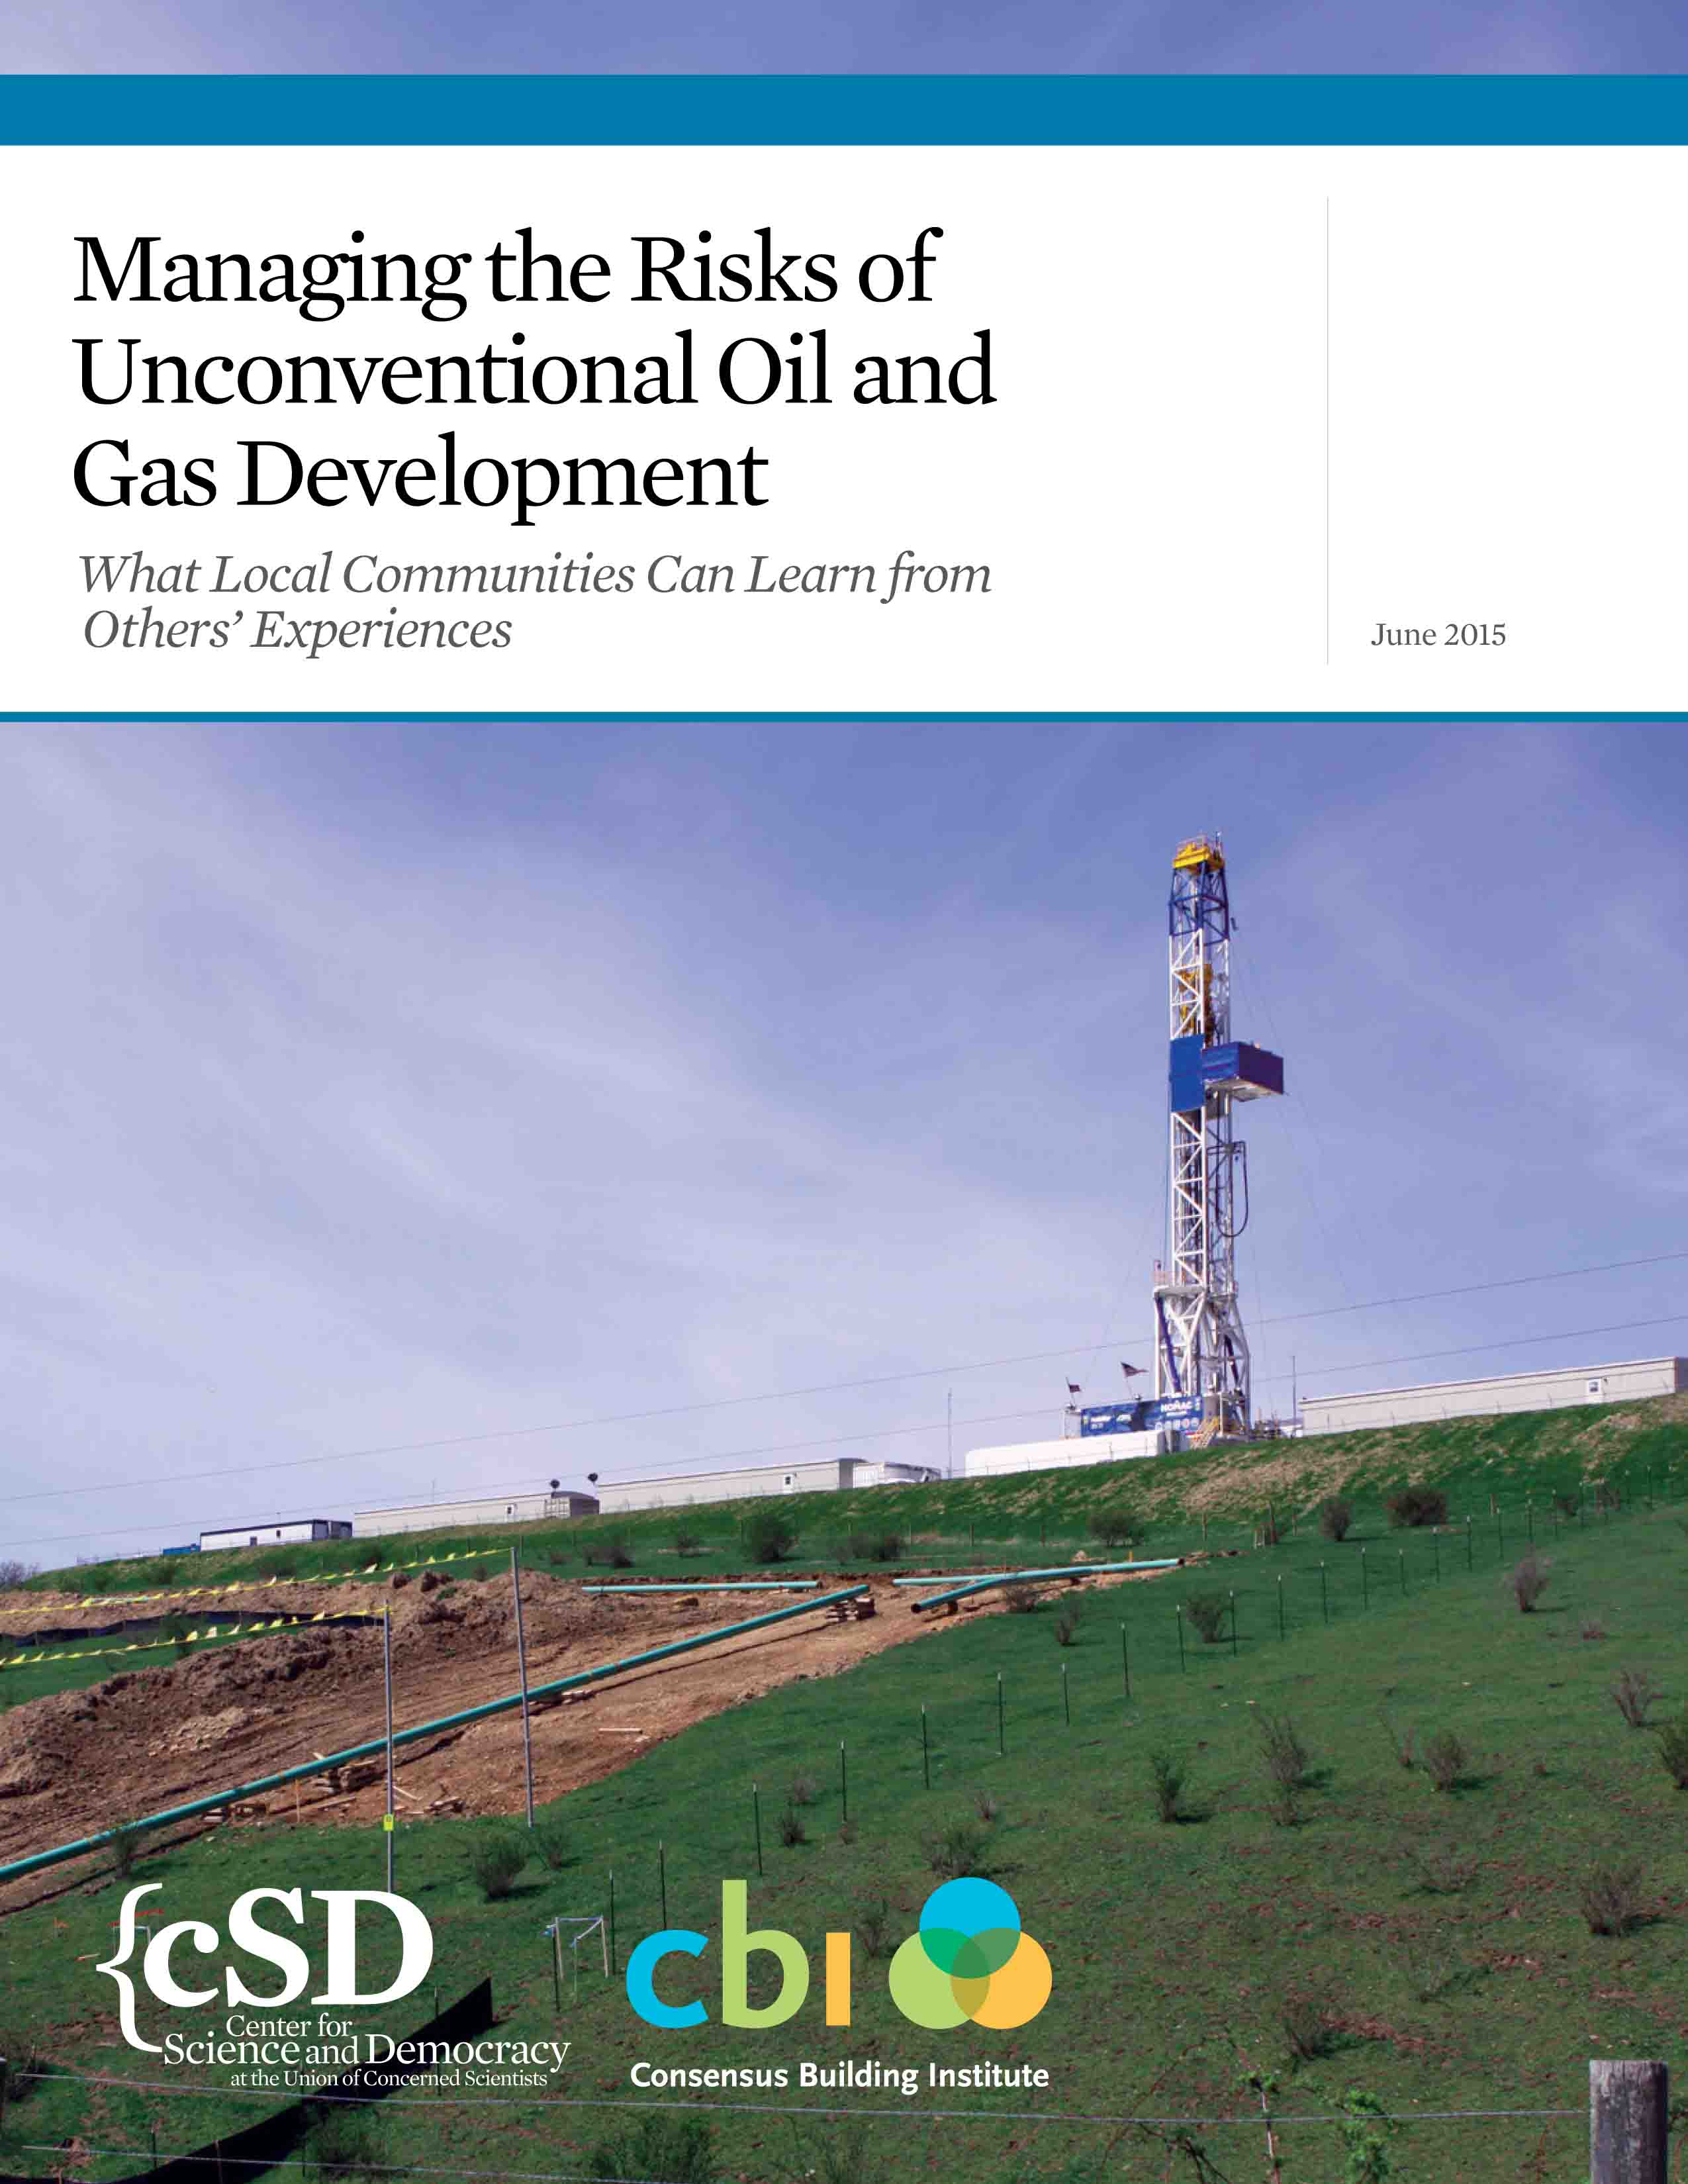 edited report on risks of fracking on communities, June 2015; UCS used my photos for cover and page 8